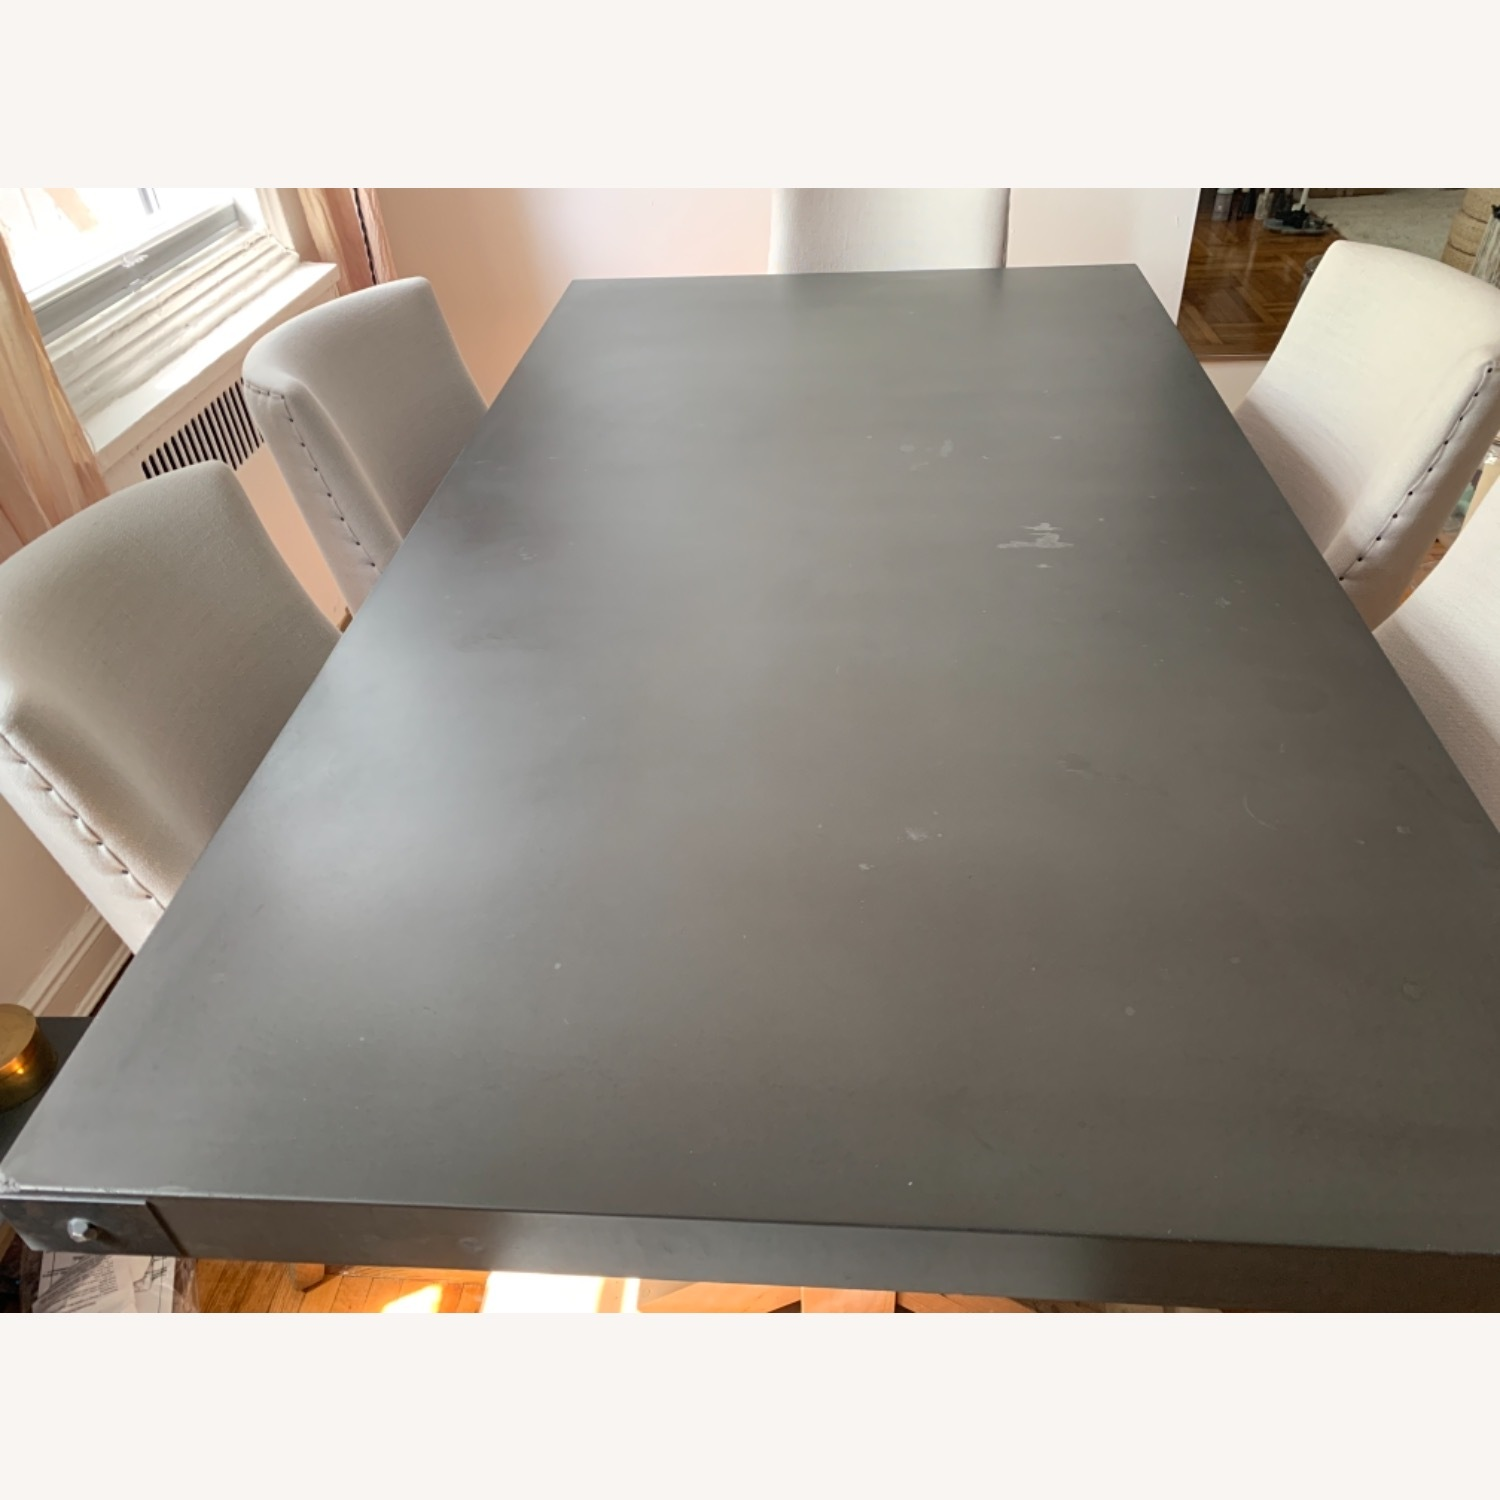 Restoration Hardware Salvaged Wood and Concrete Dining Table - image-23